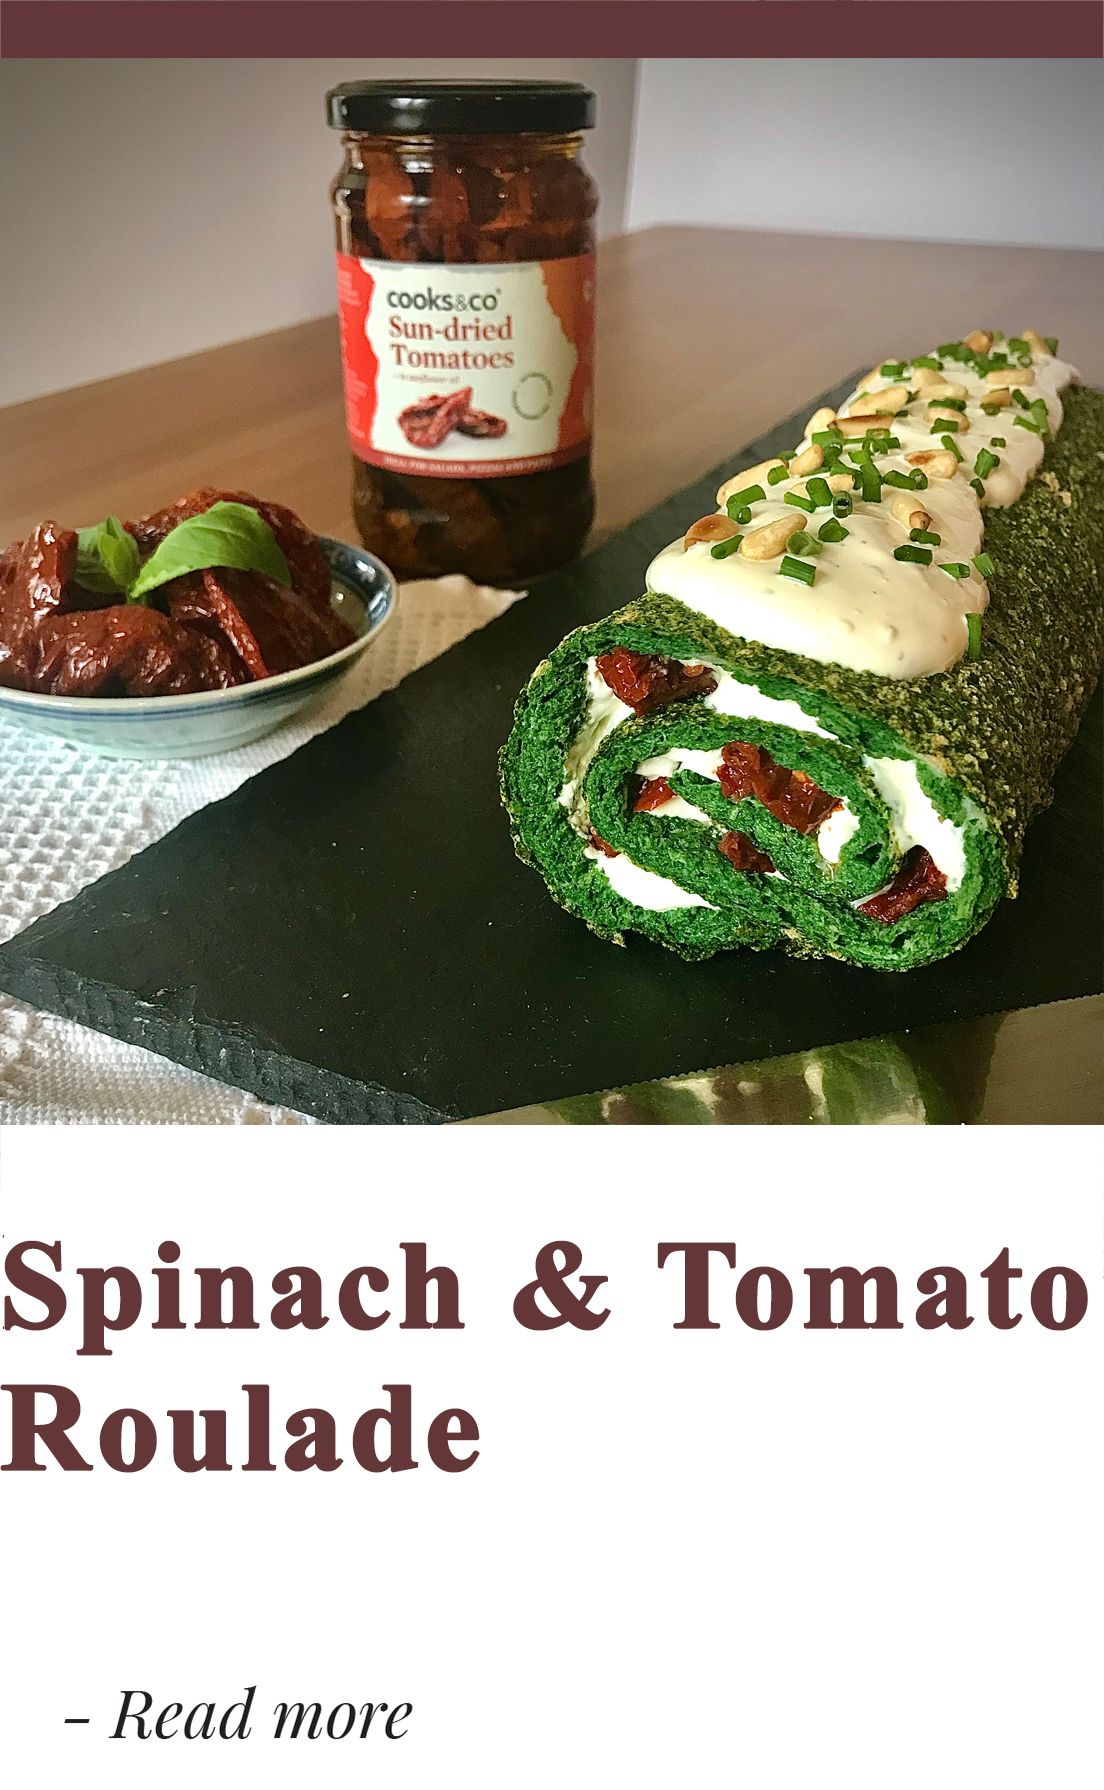 Spinach & Tomato Roulade.jpg